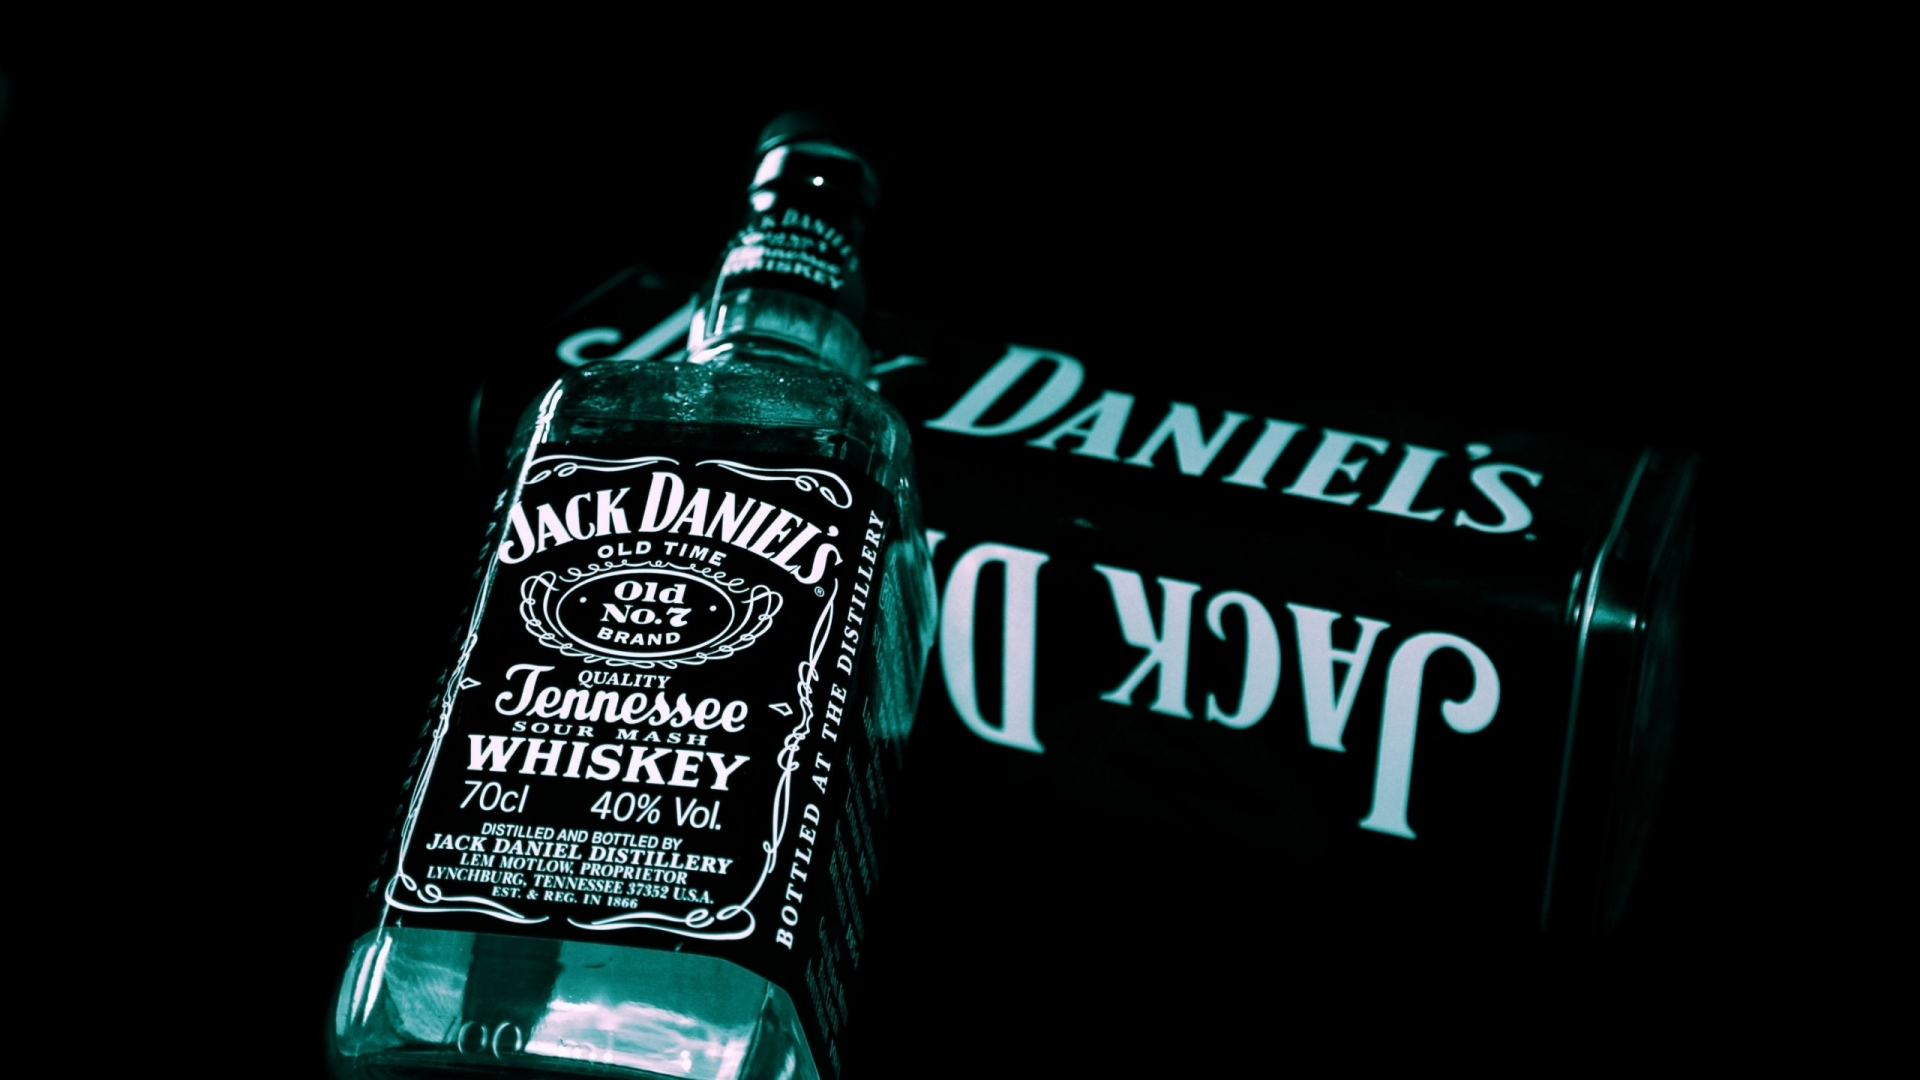 Download wallpaper 1920x1080 jack daniels whiskey brandy bottle jack daniels whiskey brandy voltagebd